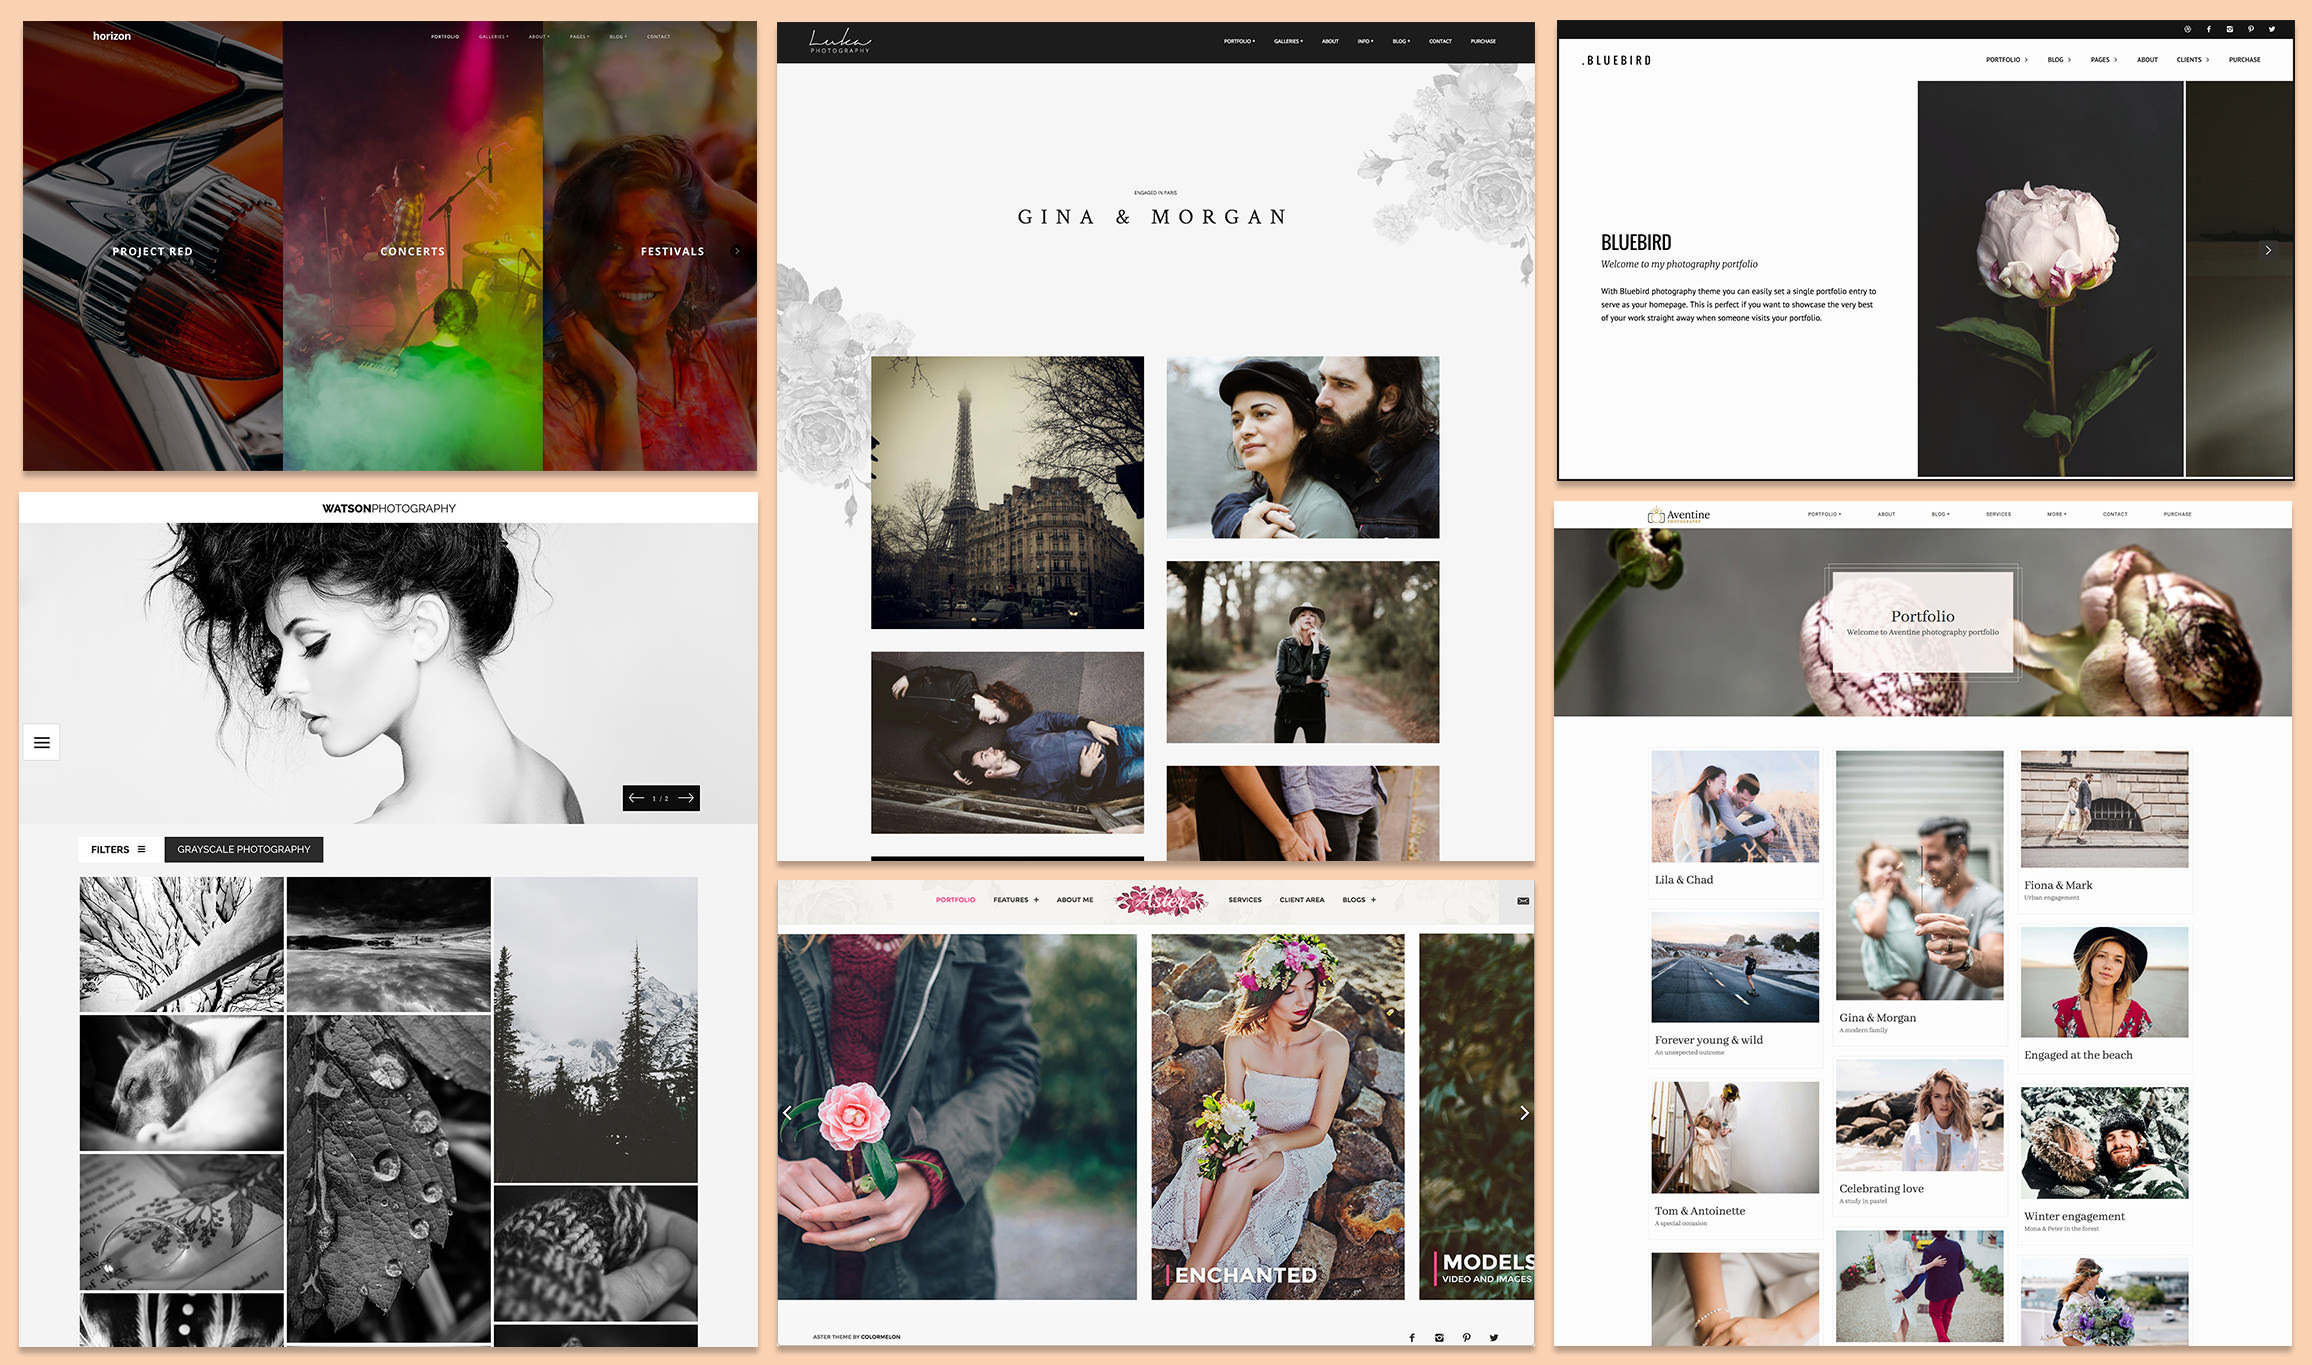 Premium WordPress photography themes for photographers made by Colormelon